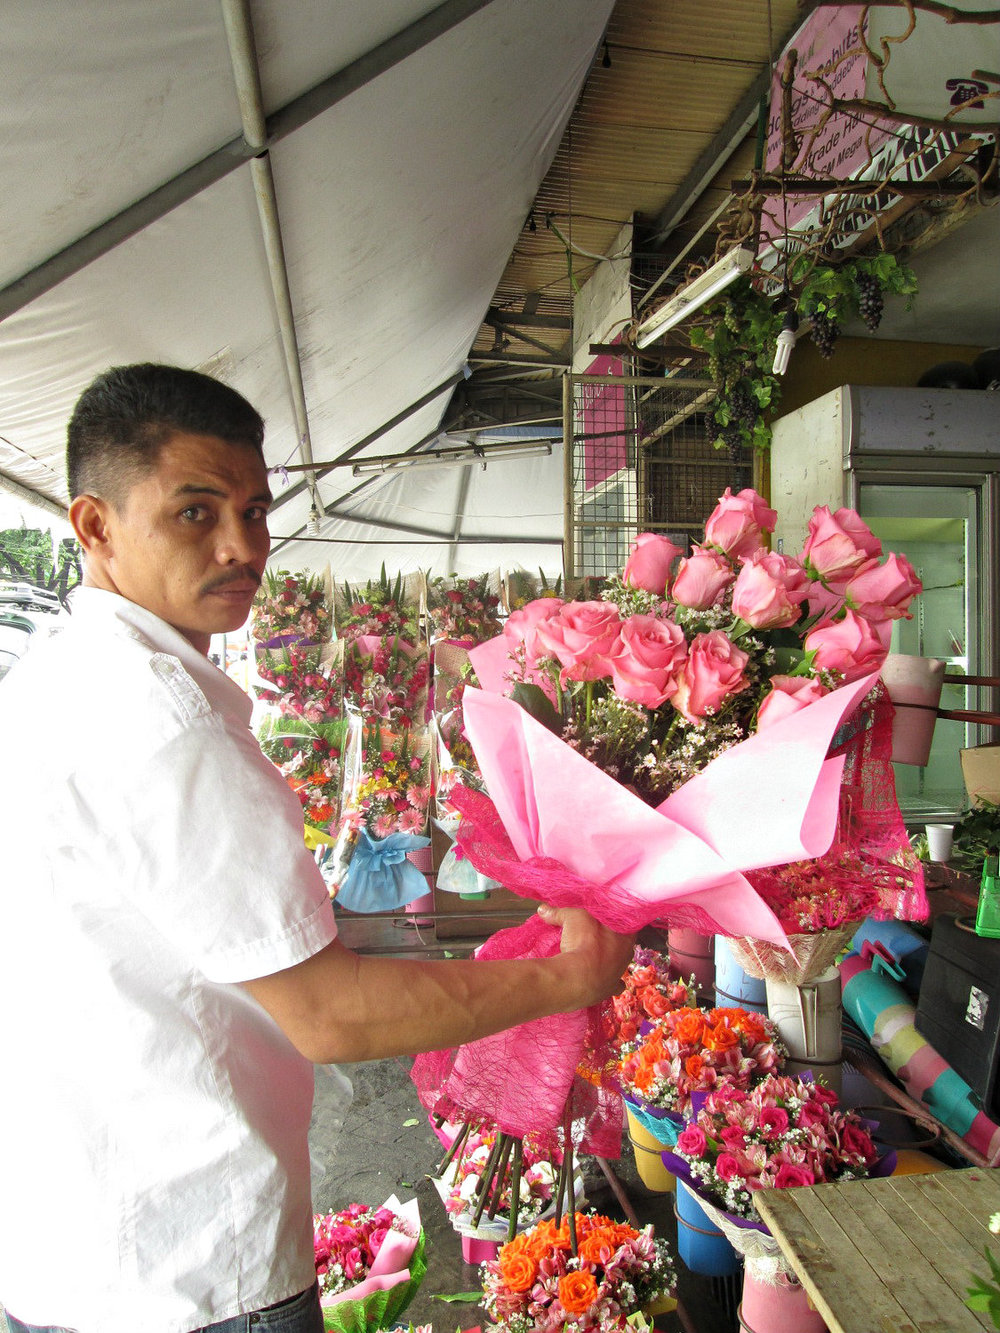 Pretty in pink : Imported  long-stemmed Ecuador roses in full bloom ready for delivery.  (Photo by Dedette Sison-Santiago)